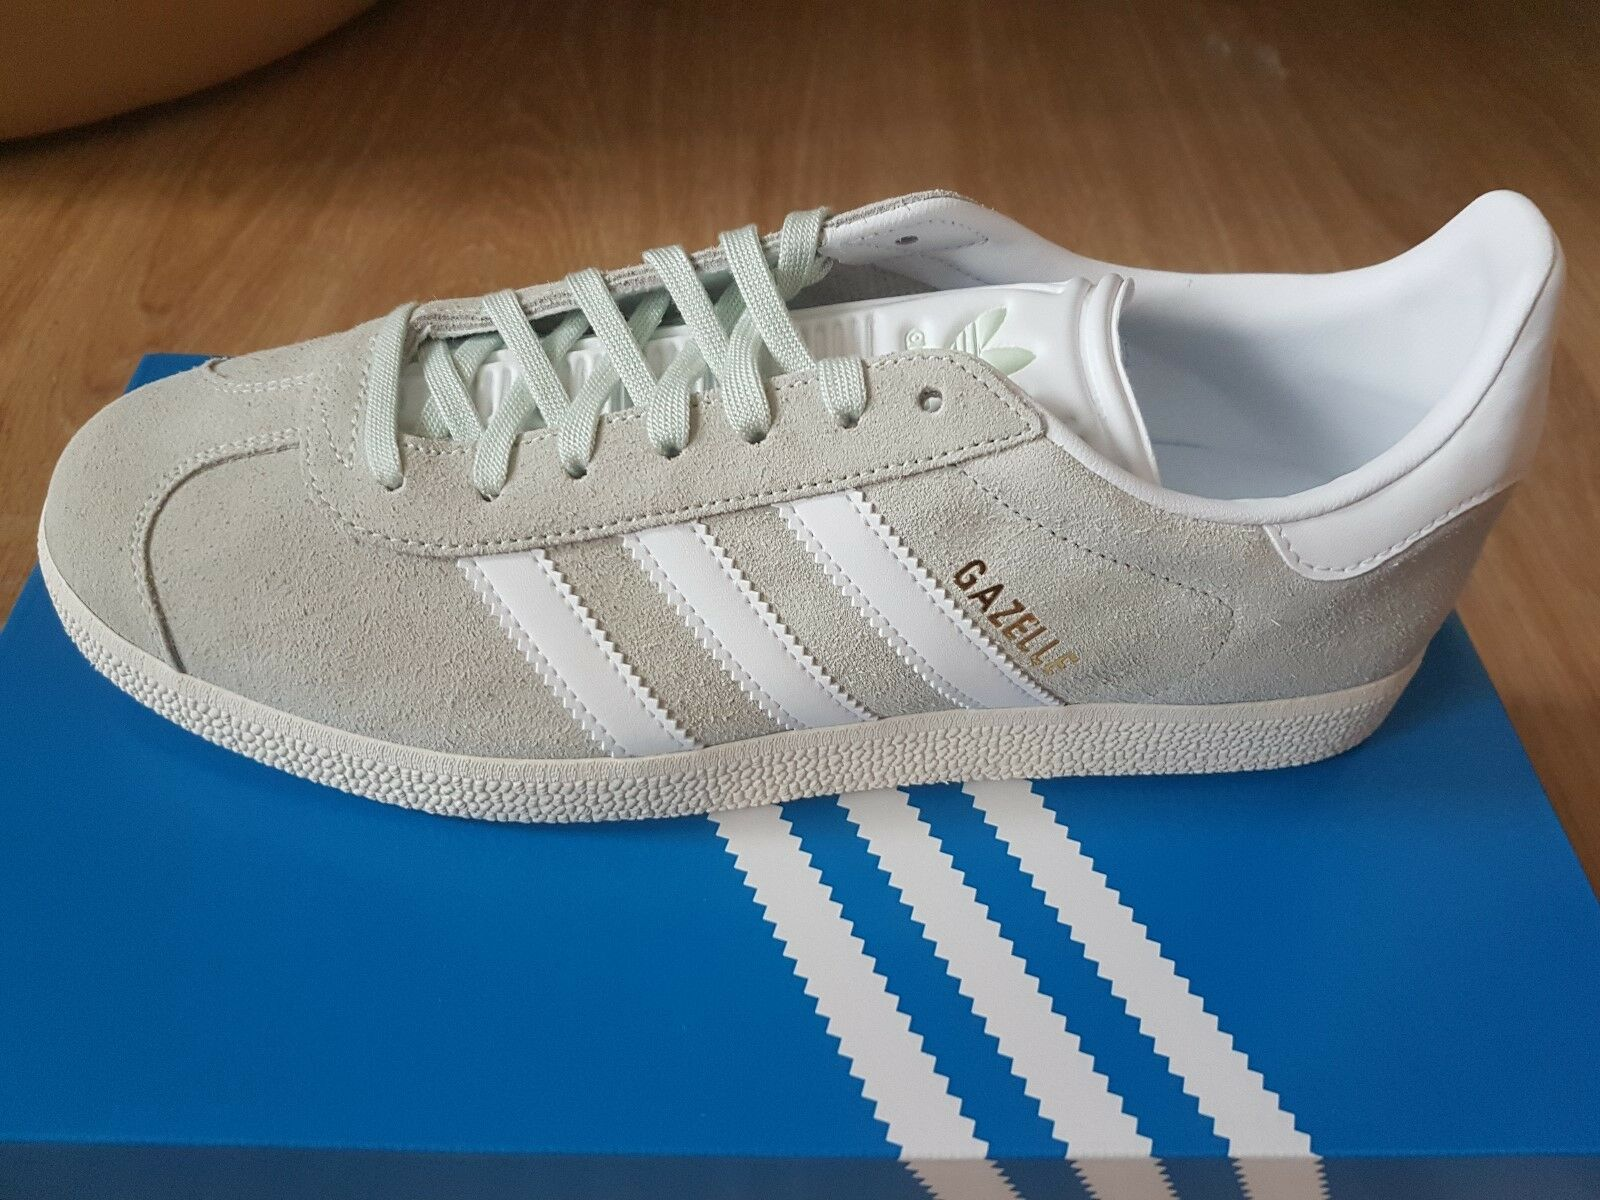 Adidas GAZELLE zapatos bz0023 Talla UK 8